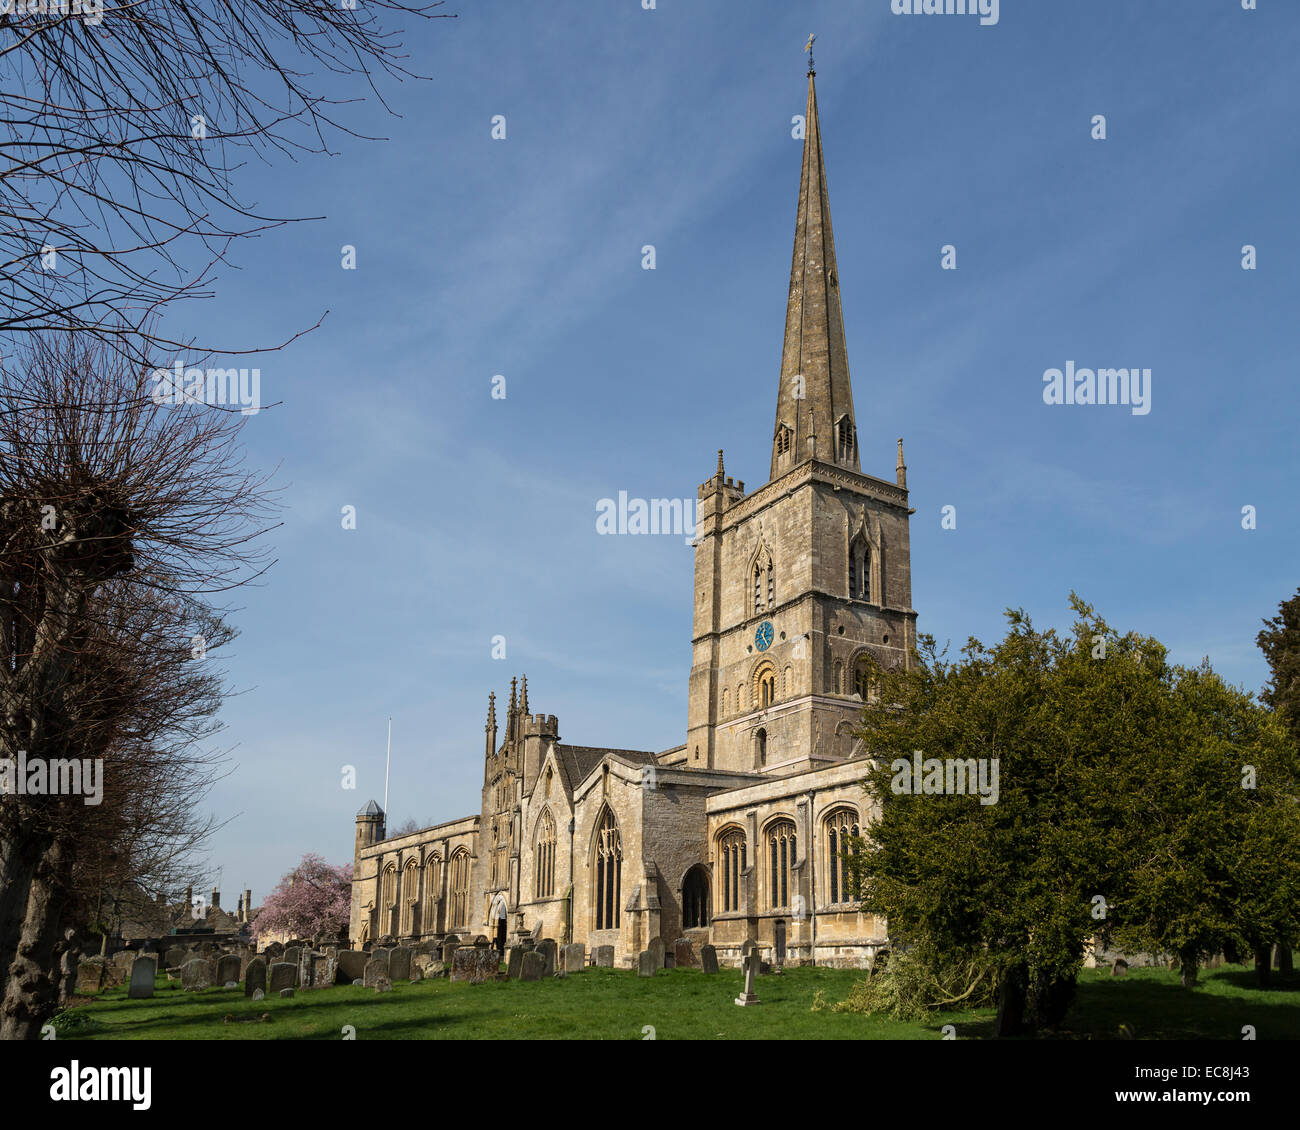 Parish church, Burford, Oxfordshire, UK - Stock Image